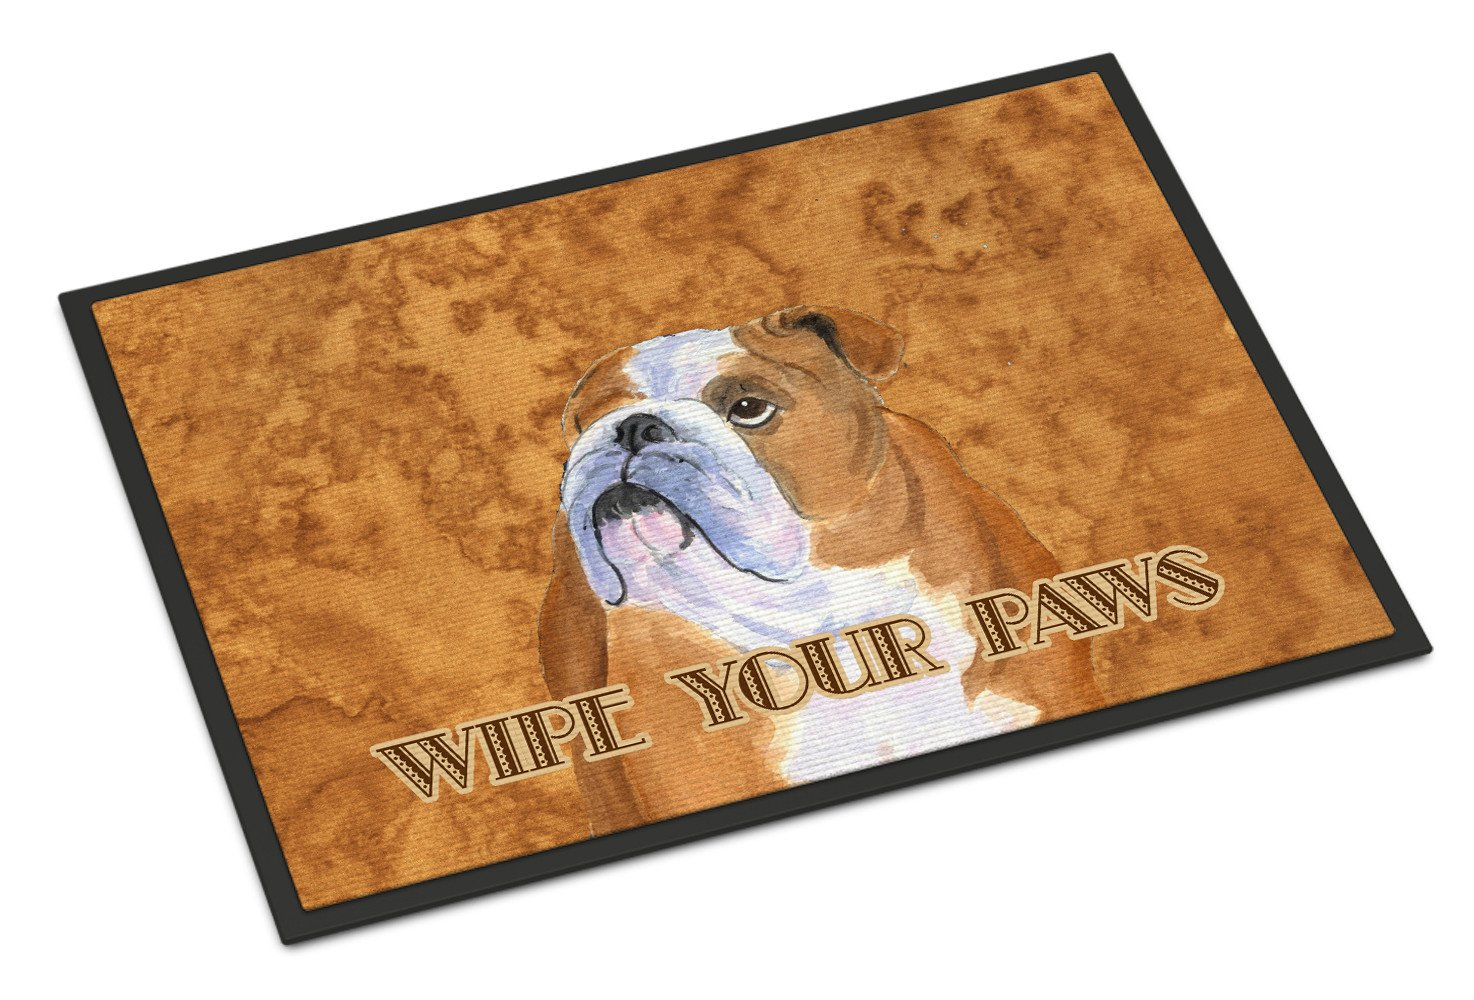 Bulldog English Wipe your Paws Indoor or Outdoor Mat 24x36 SS4893JMAT - the-store.com